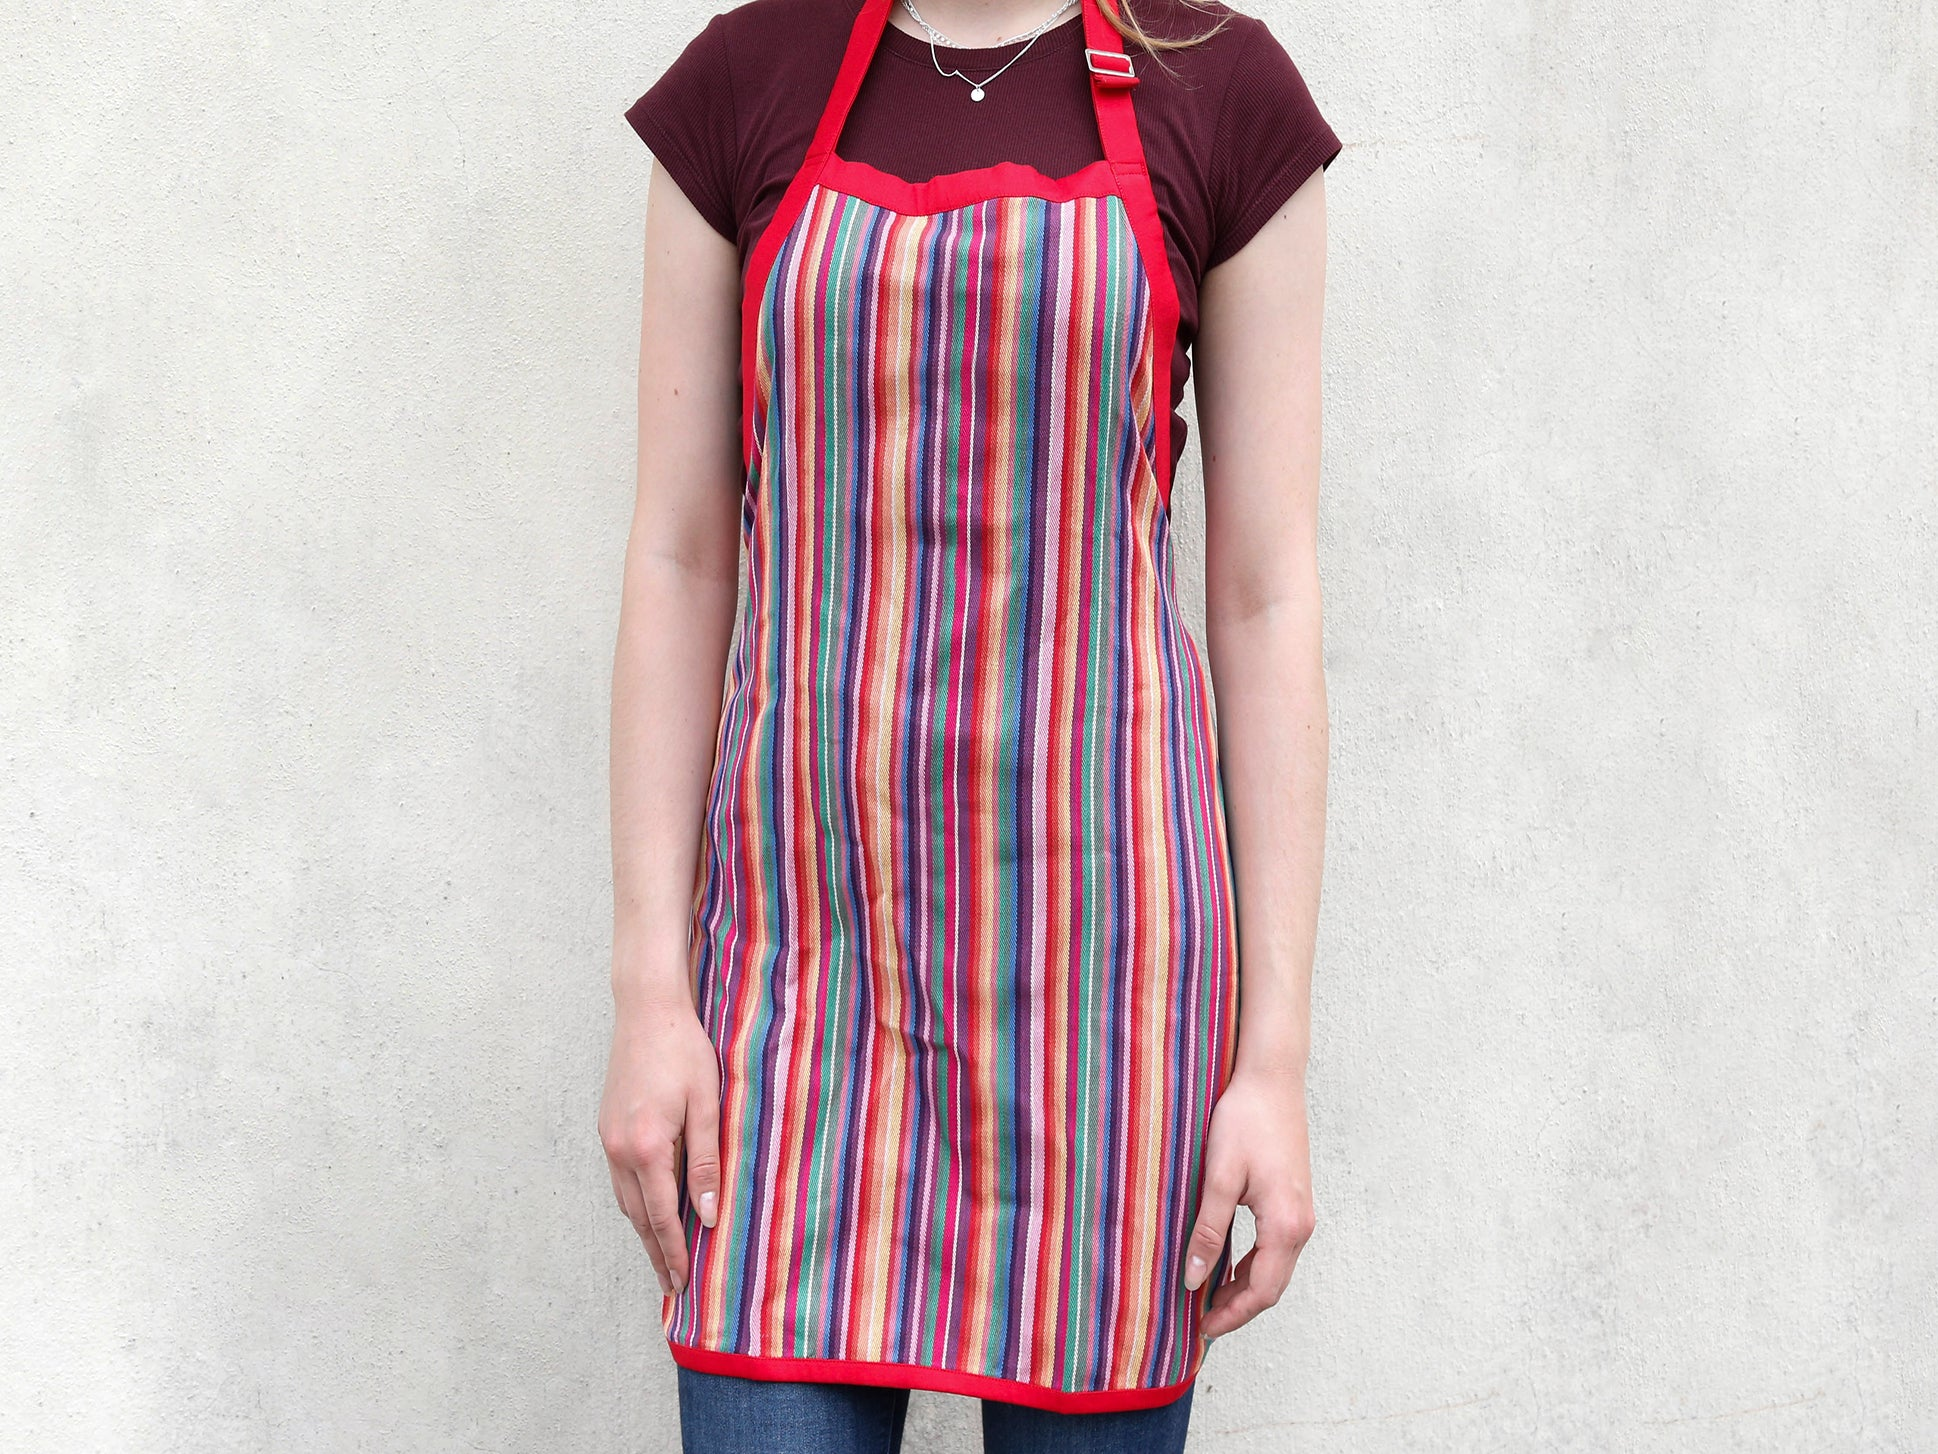 Apron stripe w/ deep red border